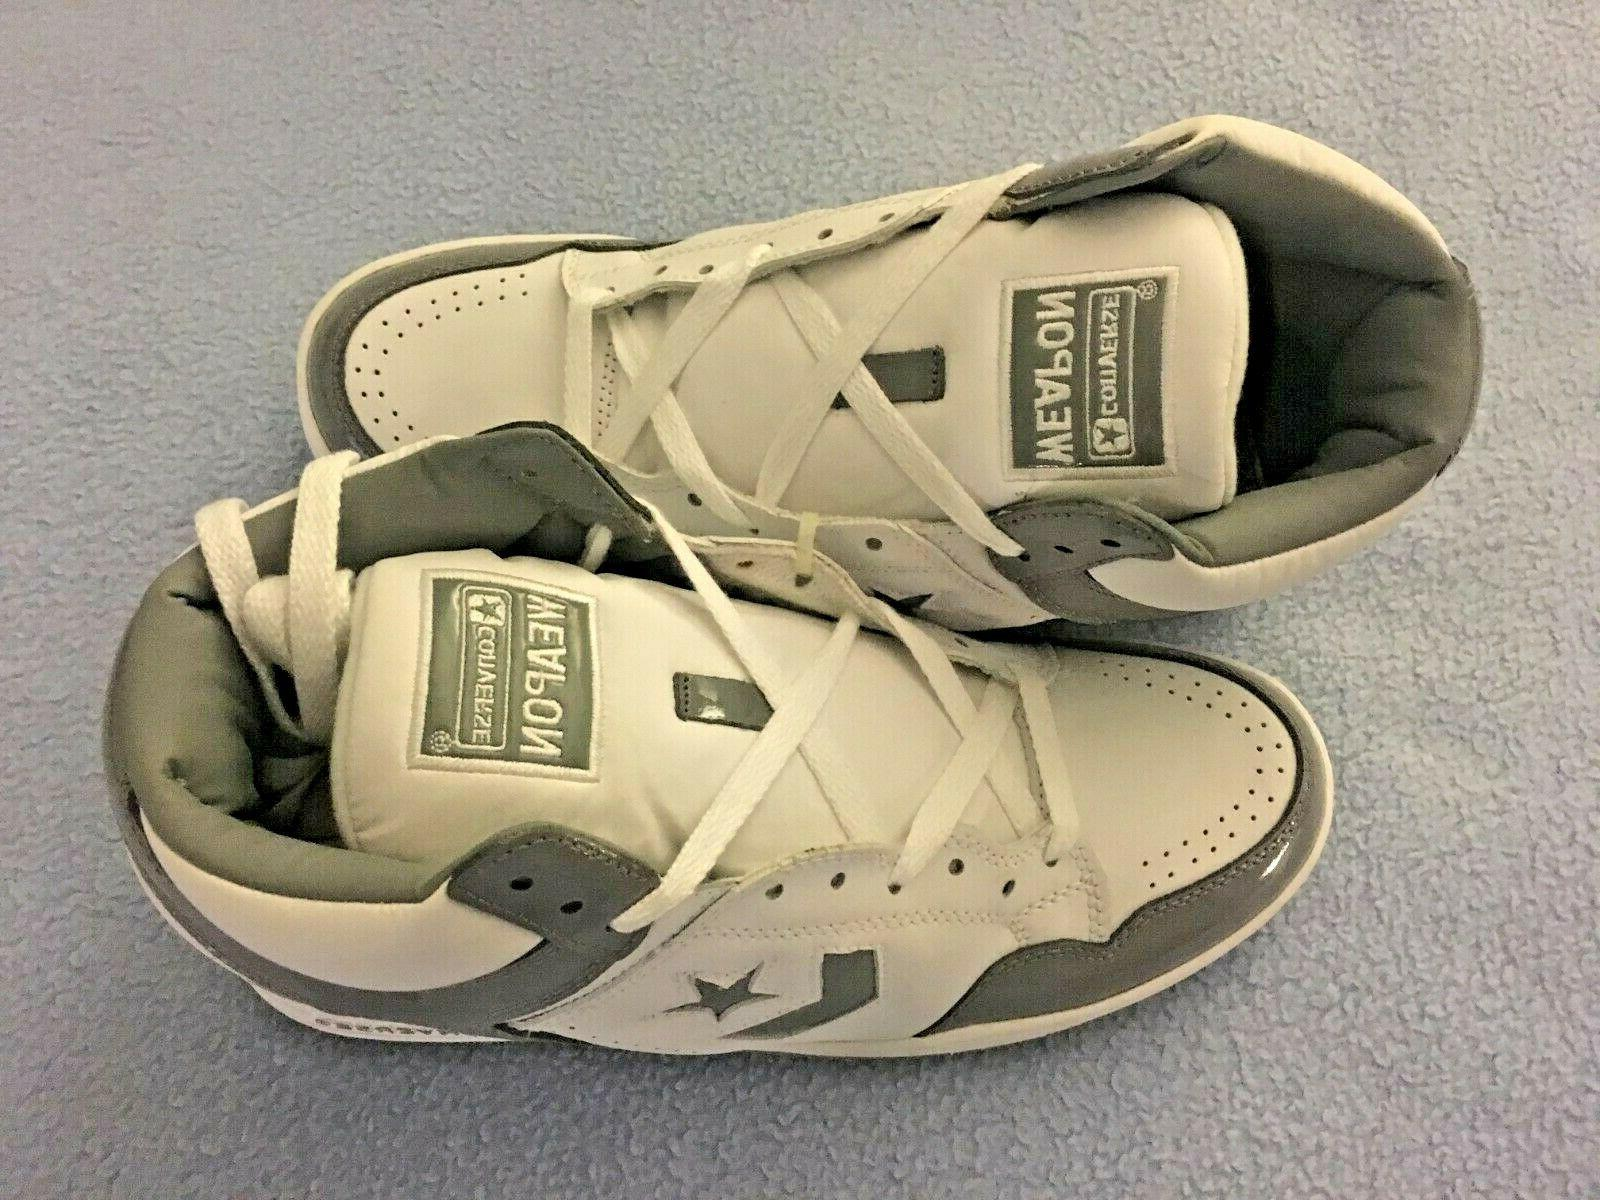 CONVERSE WEAPON HI Grey Basketball Shoes Size 10